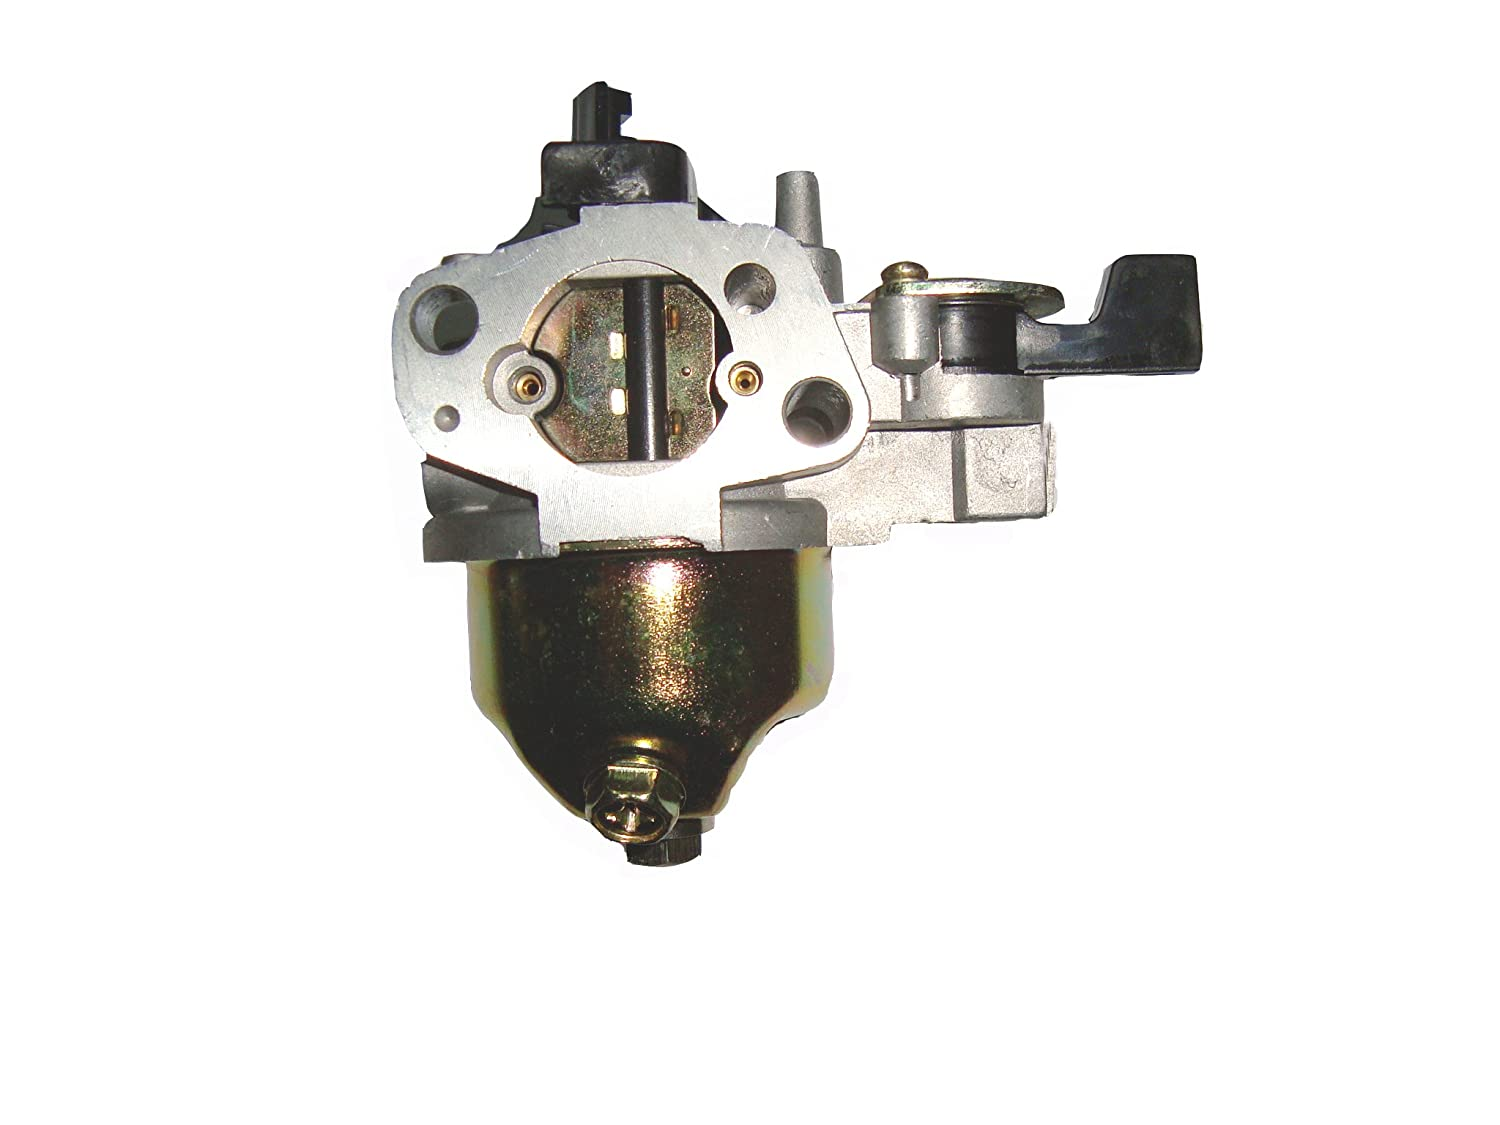 Honda Gx200 65hp Engine Carburetor Carb Replaces Diagram Of All Years Gcv160a R1a Small 16100 Zl0 W51 Lawn Mower Gas Tanks Garden Outdoor